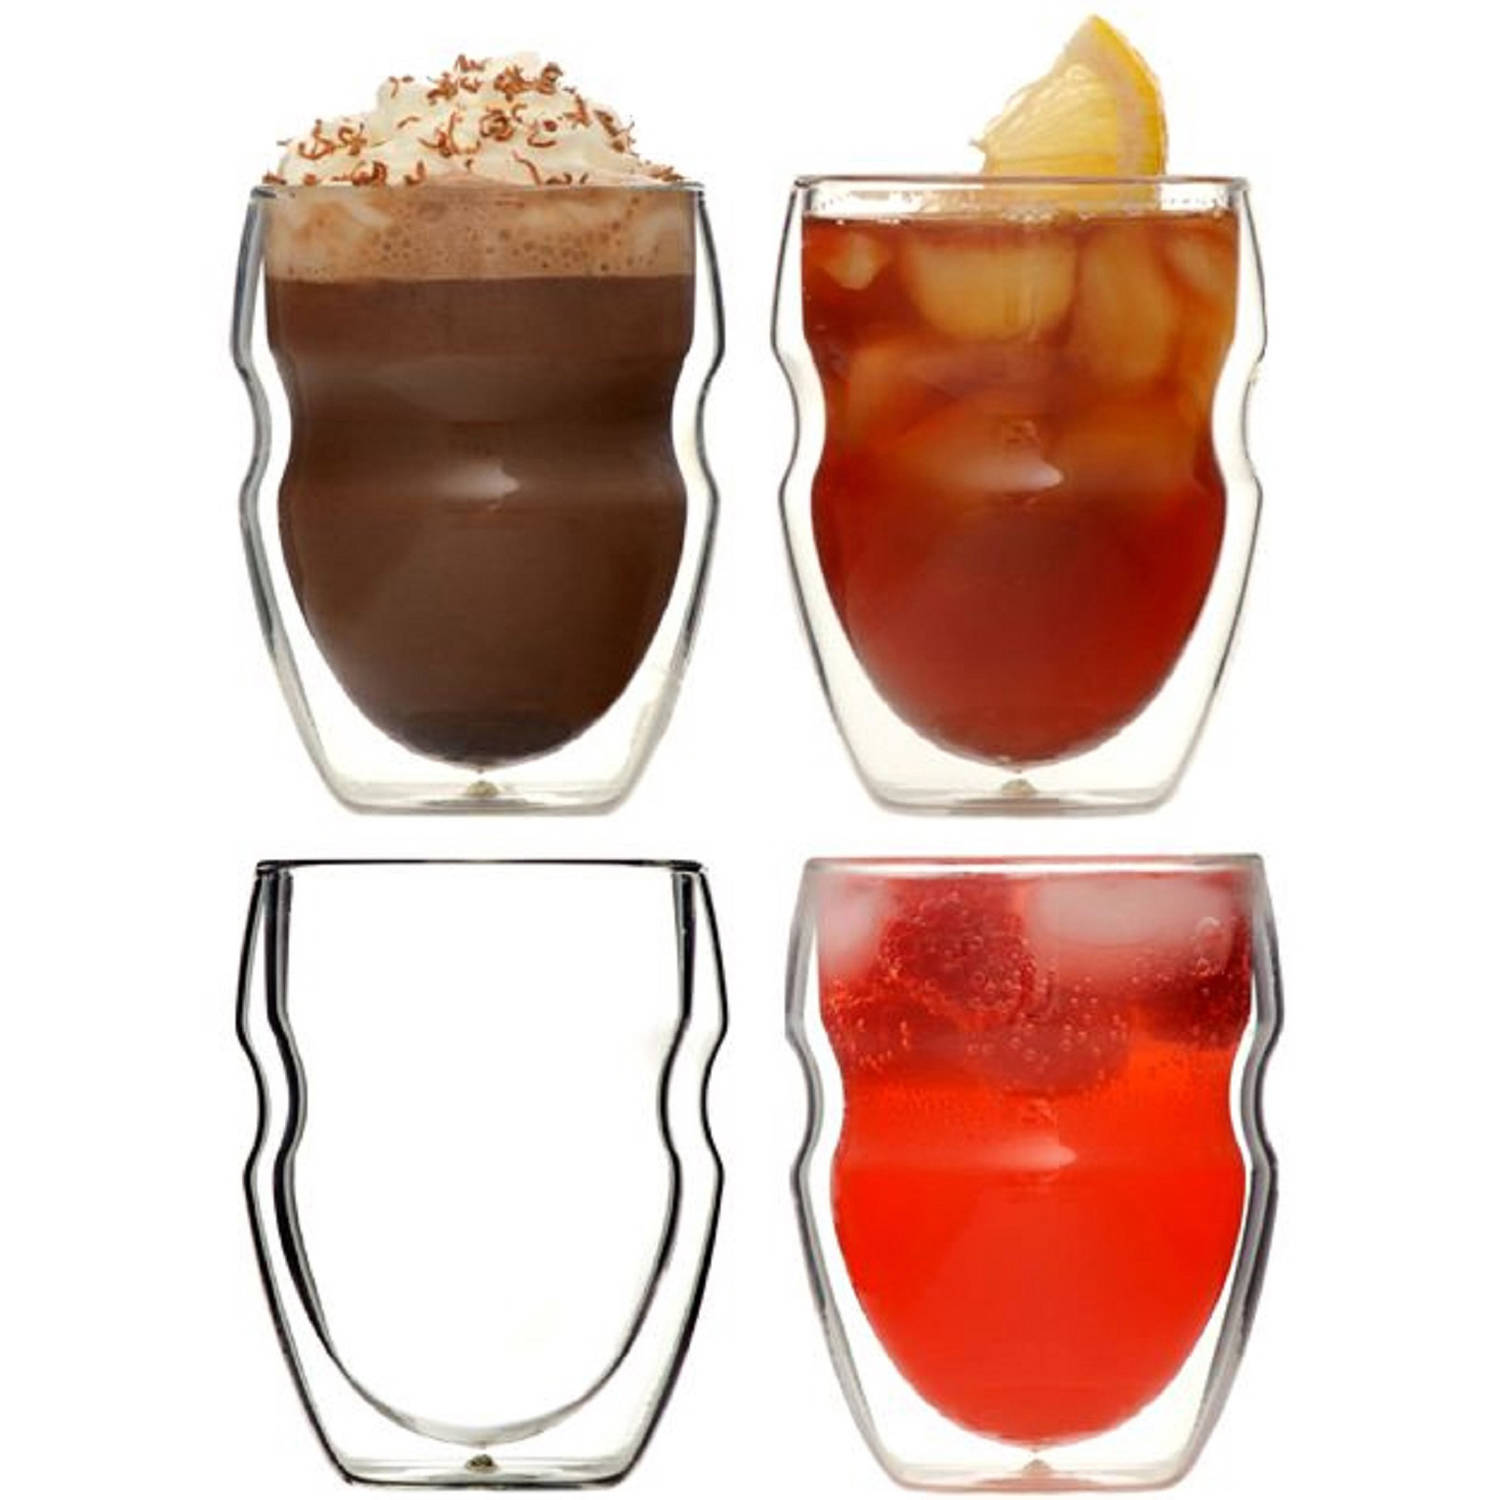 Serafino Double Wall 8 oz Beverage and Coffee Glasses, Set of 4 by OZERI